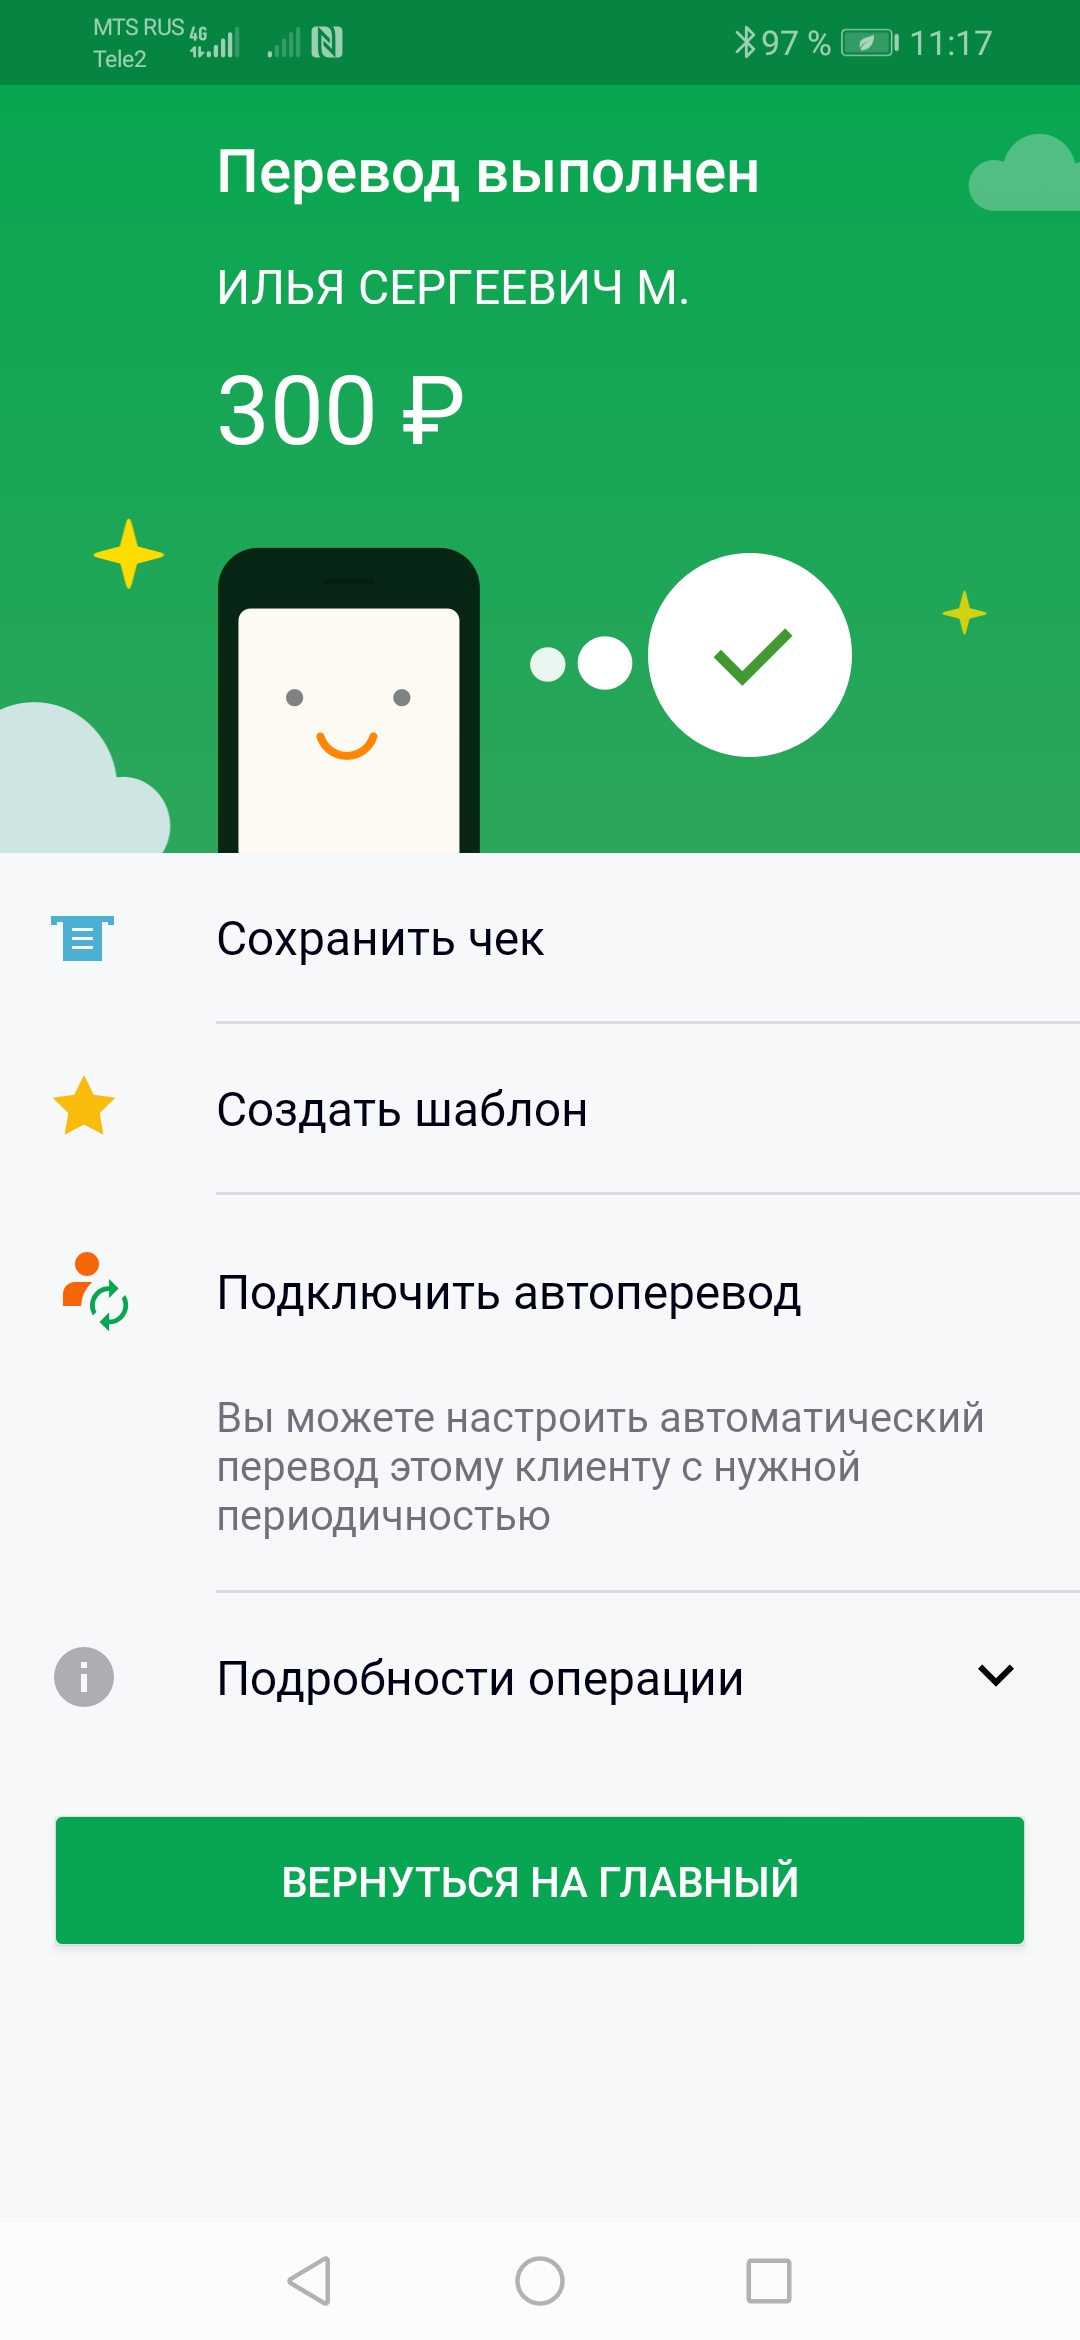 Screenshot_20190822_111718_rusberbankmobile